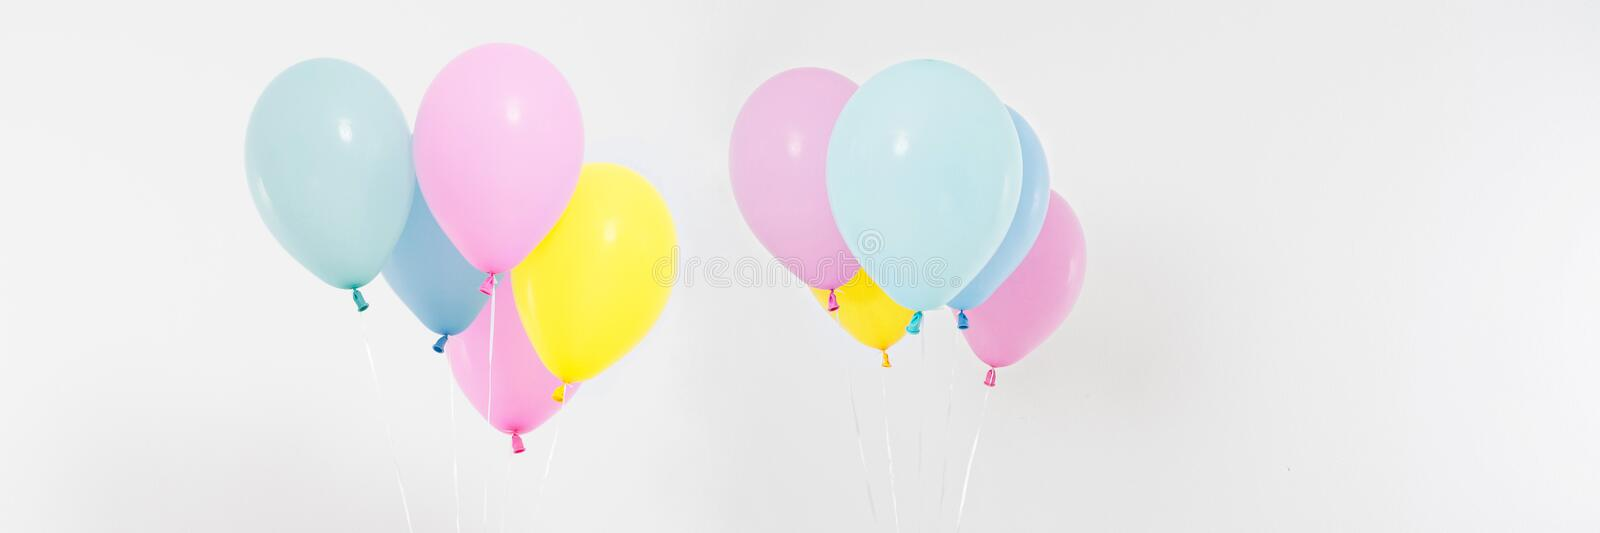 Set,collage coloured balloons background. Celebration, holidays, summer concept. Design template, billboard or banner blank. Top view, copy space royalty free stock images